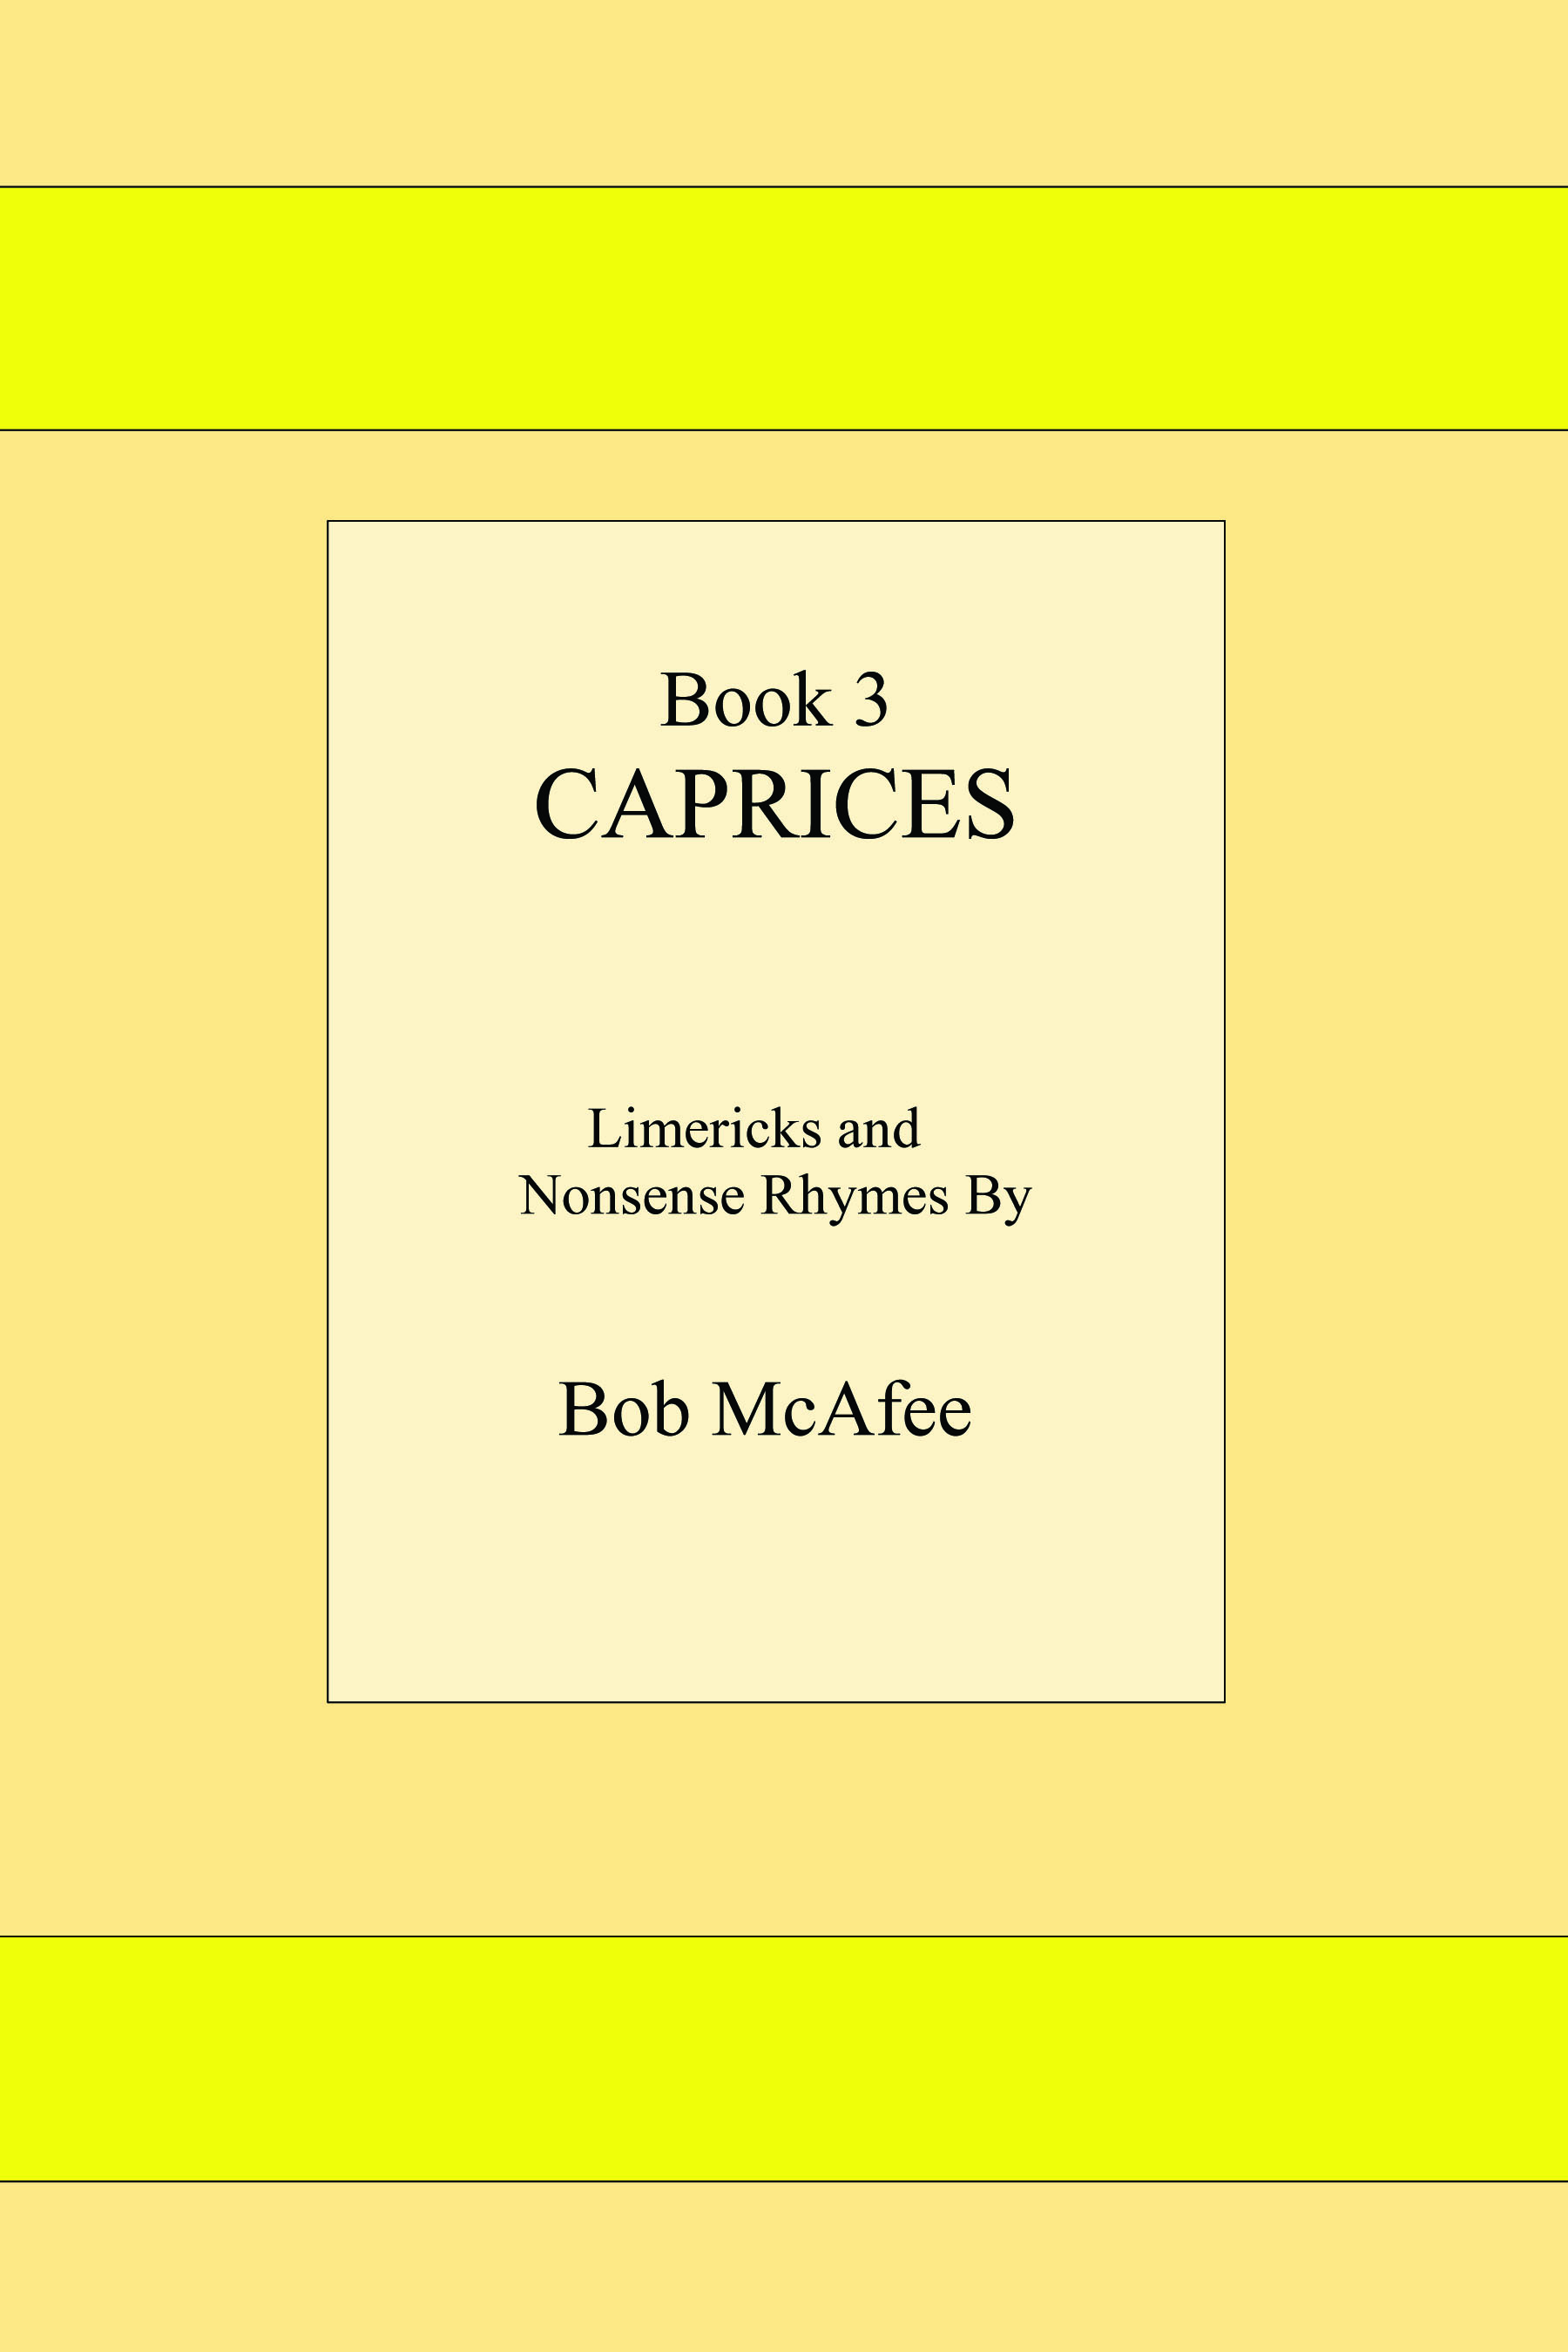 Caprices by Bob McAfee